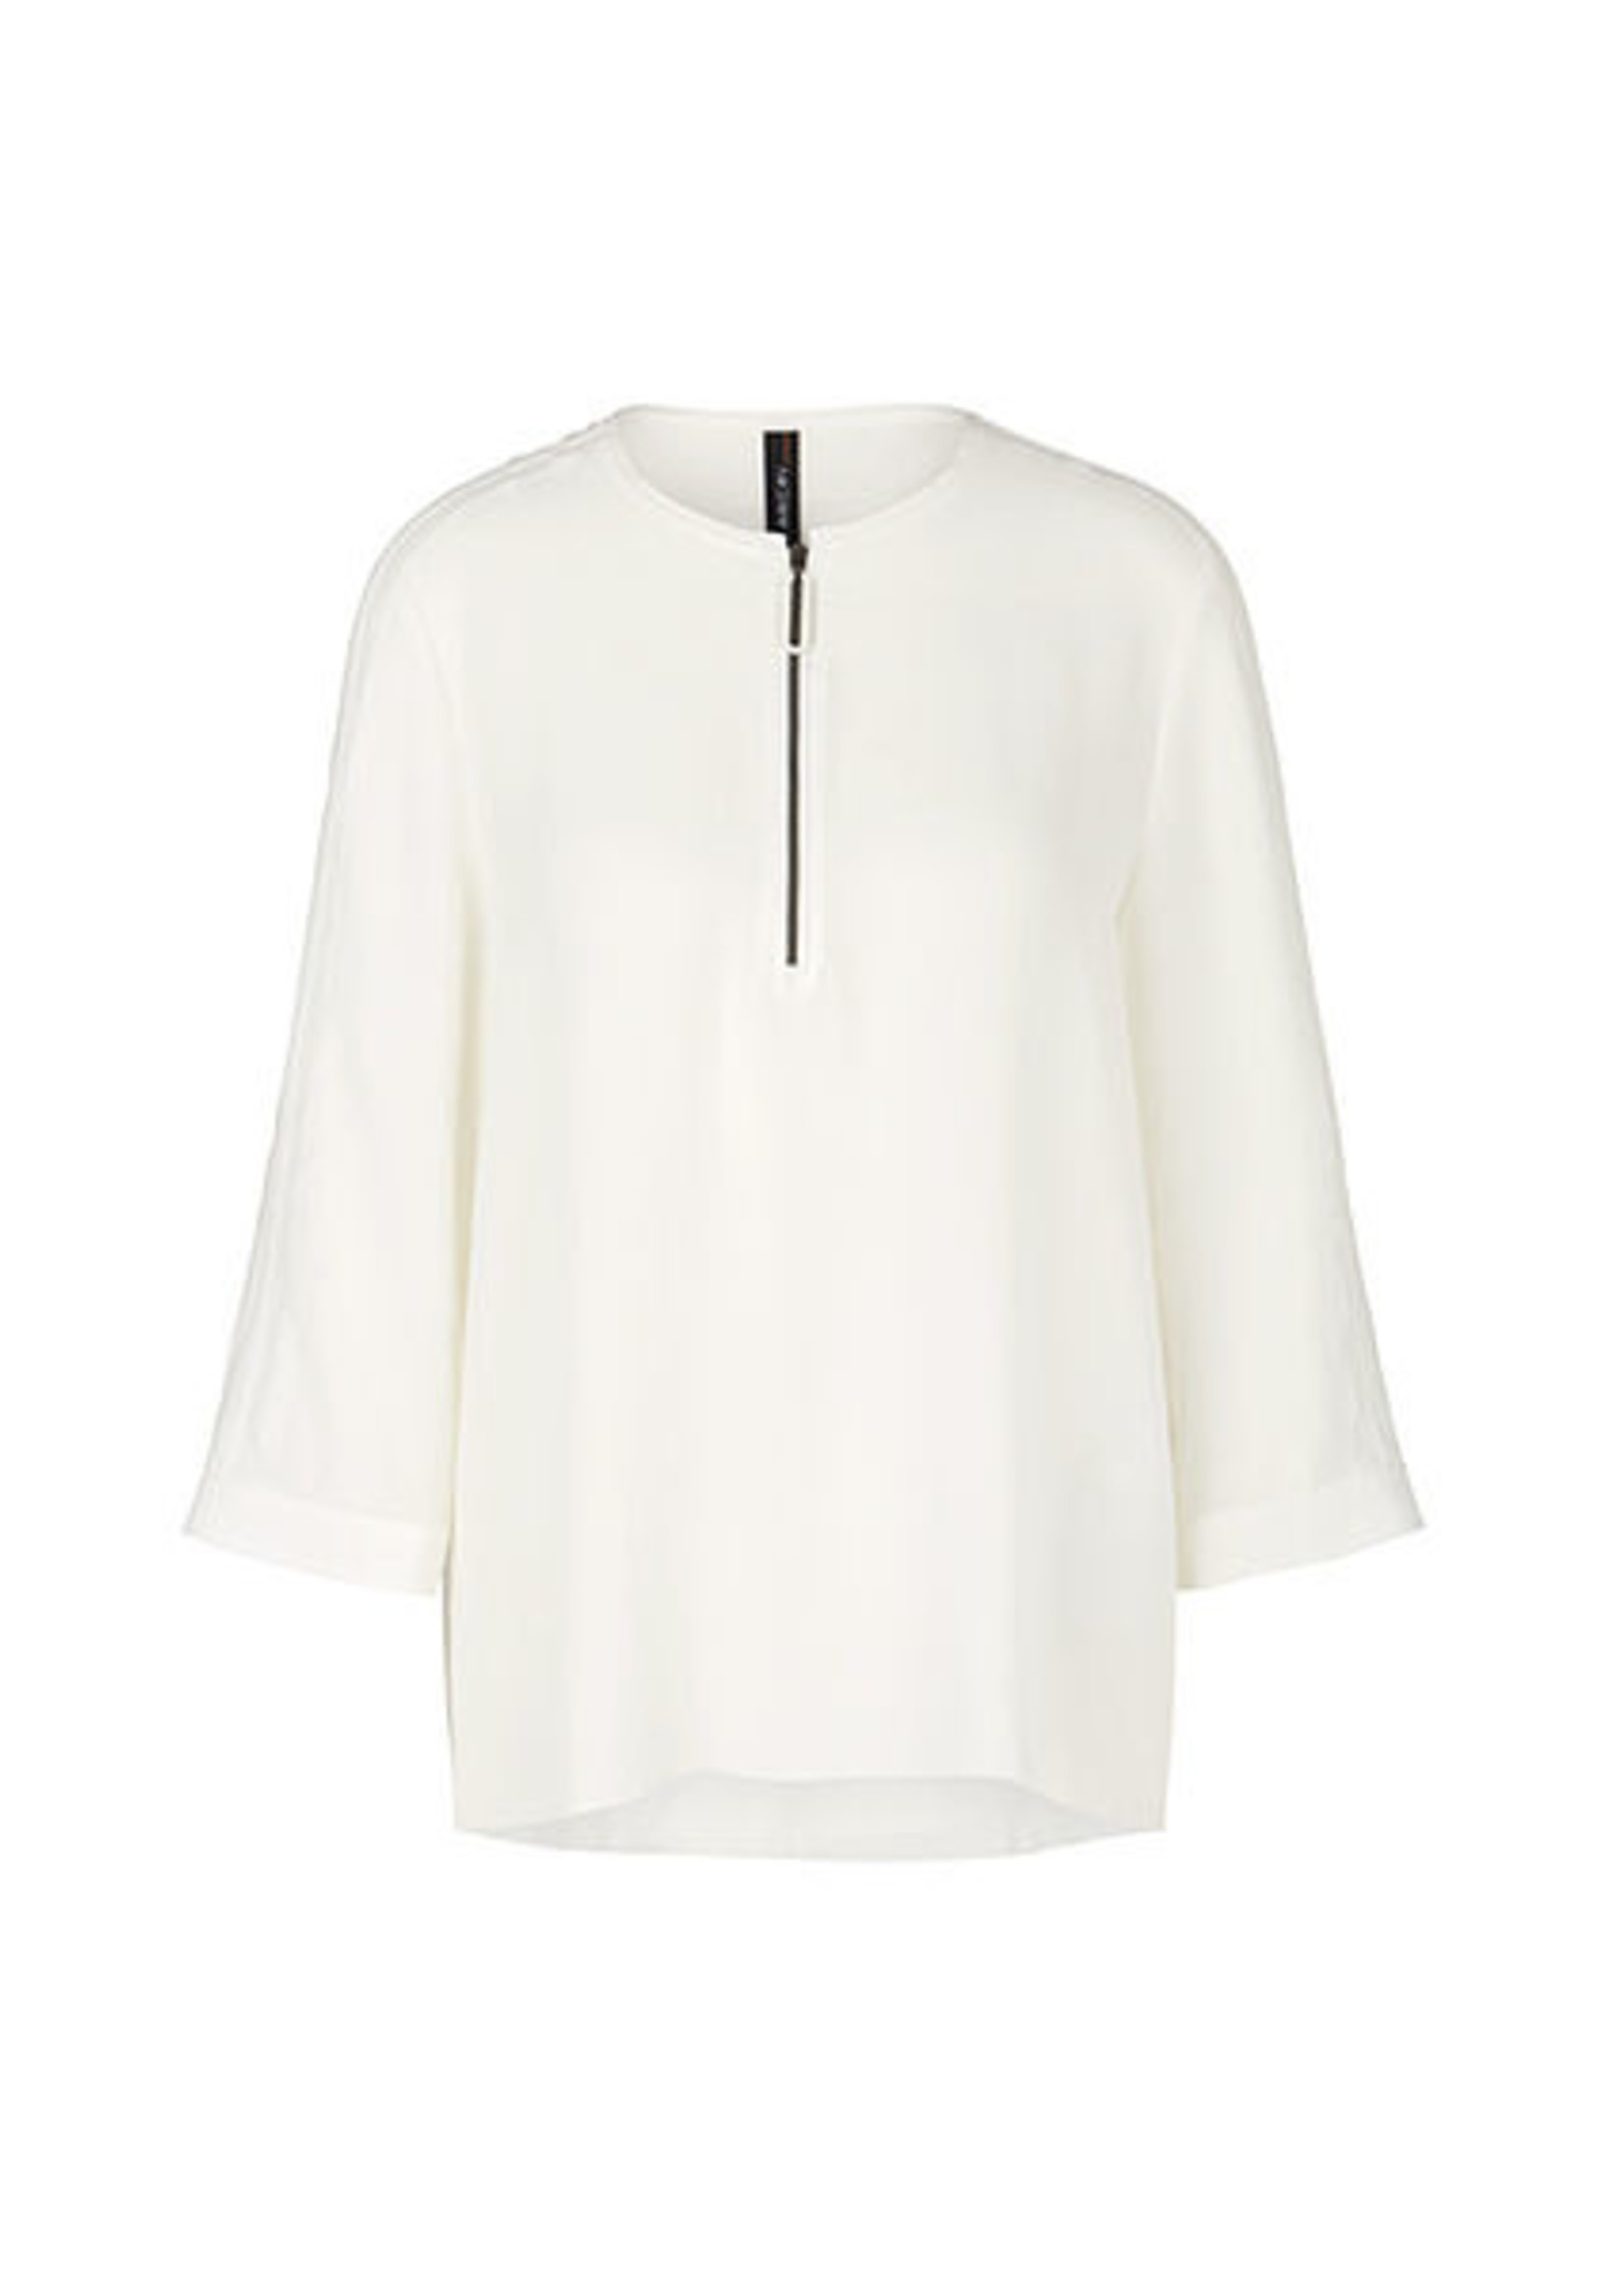 Marccain Sports Blouse RS 55.10 W41 off-white